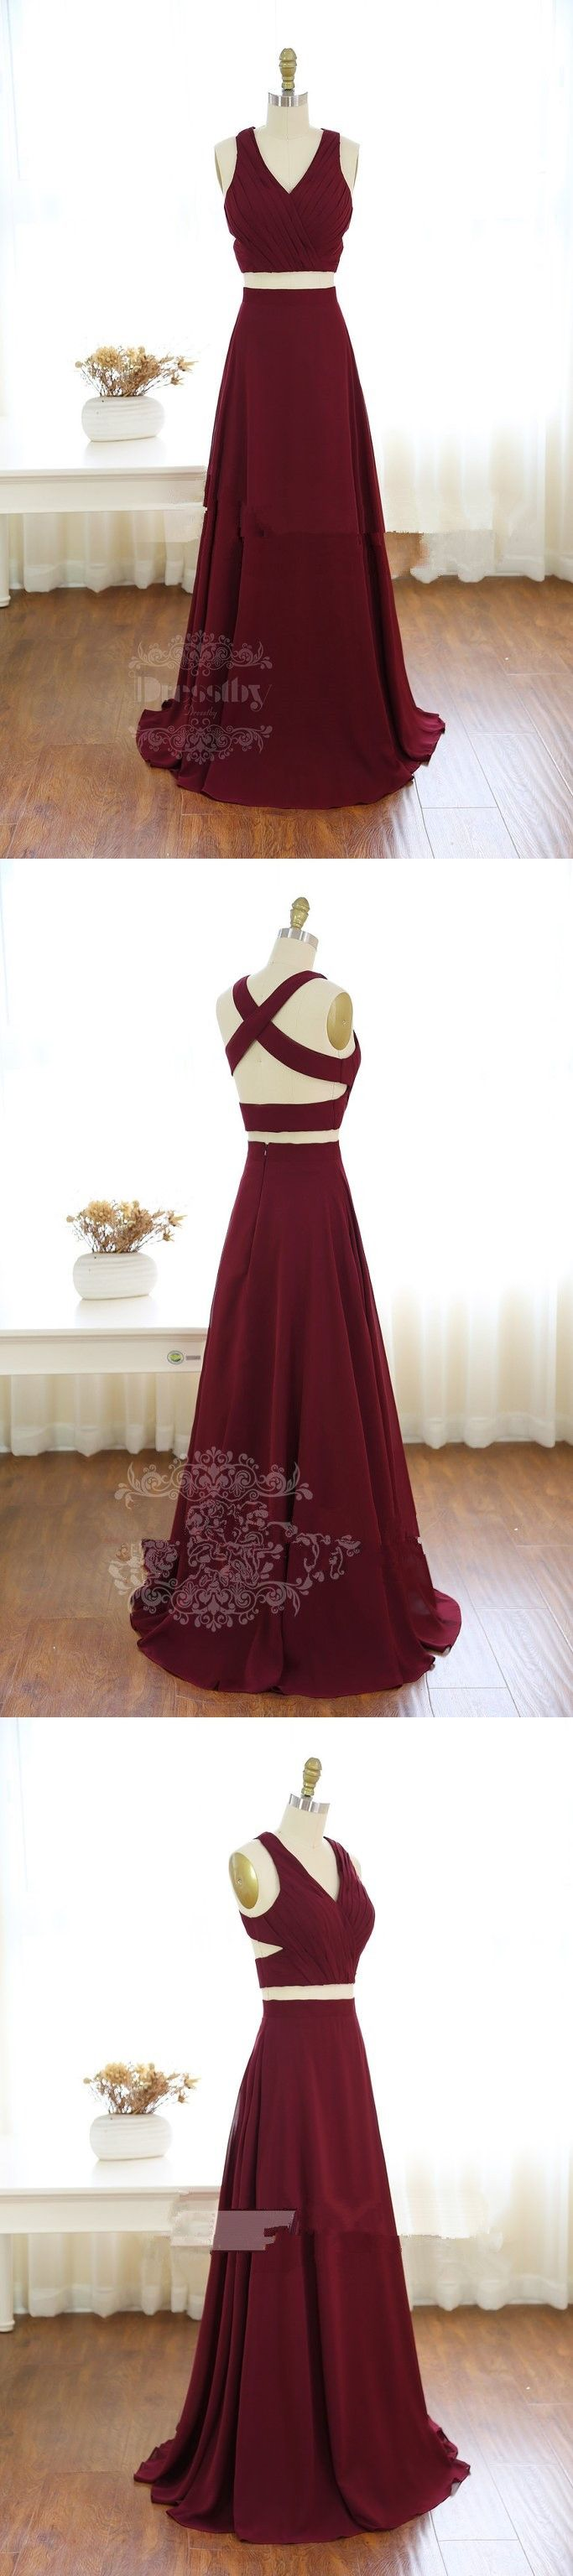 prom dresses, two piece prom dresses, 2017 long prom dresses, burgundy prom dresses, burgundy long evening dress